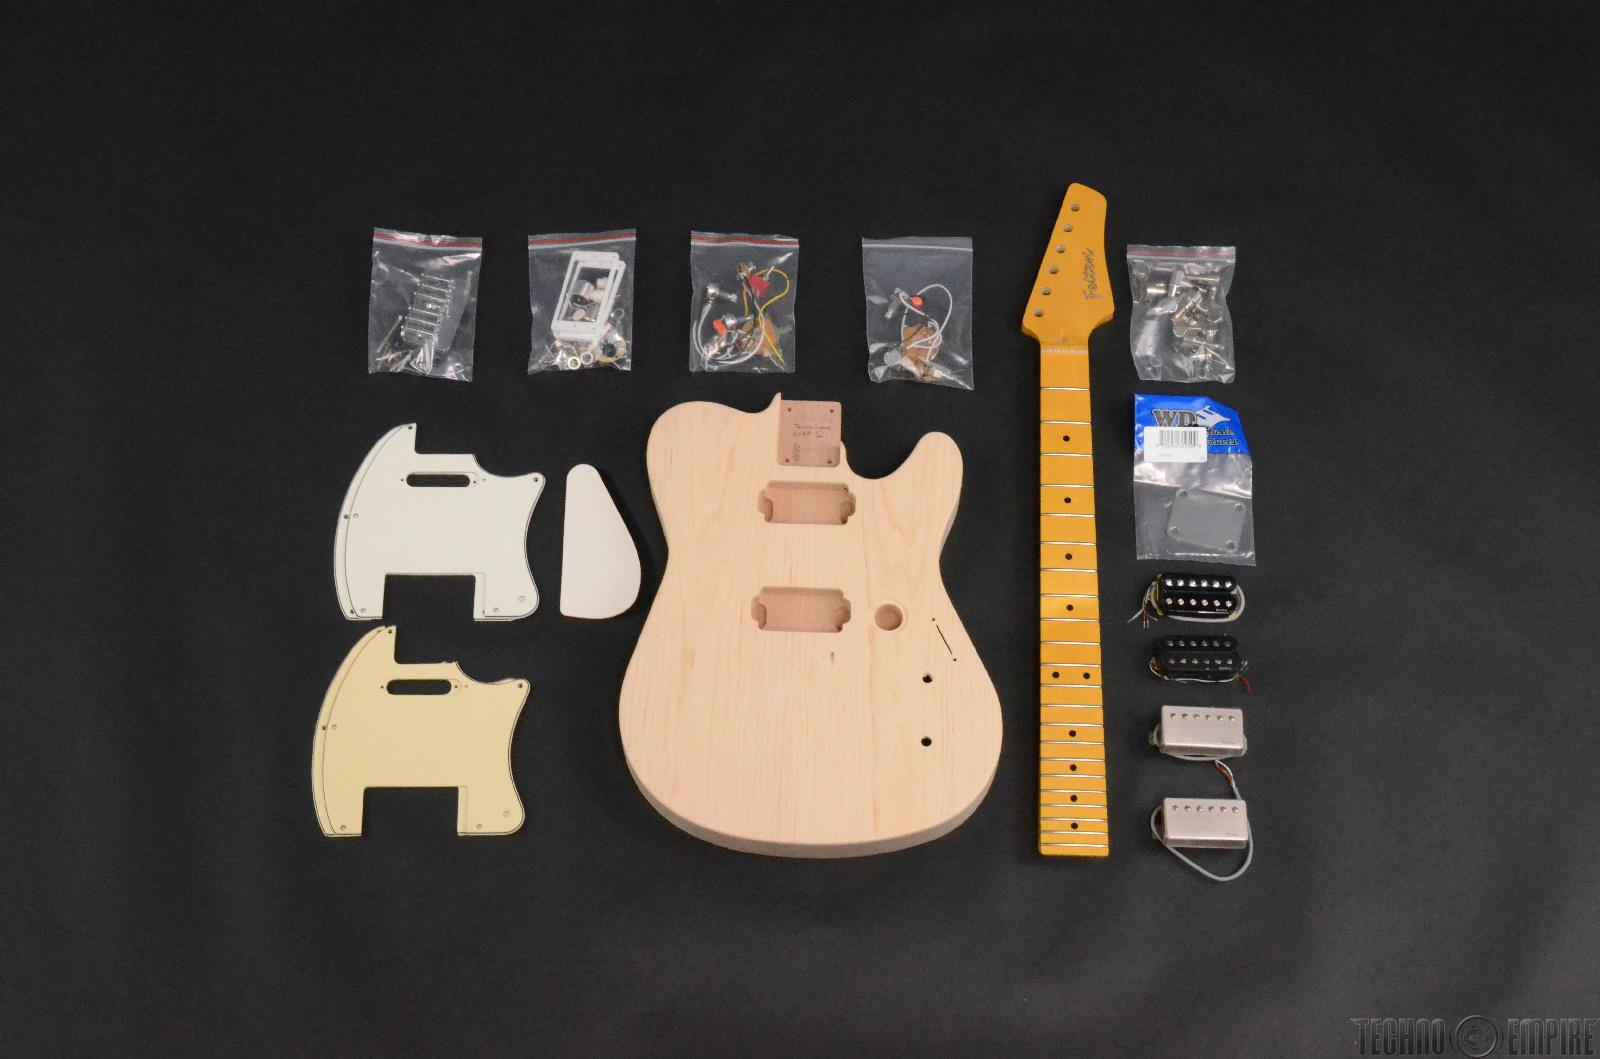 Buzz Feiten Gemini Elite Pro Build Your Own Electric Guitar Kit #28454